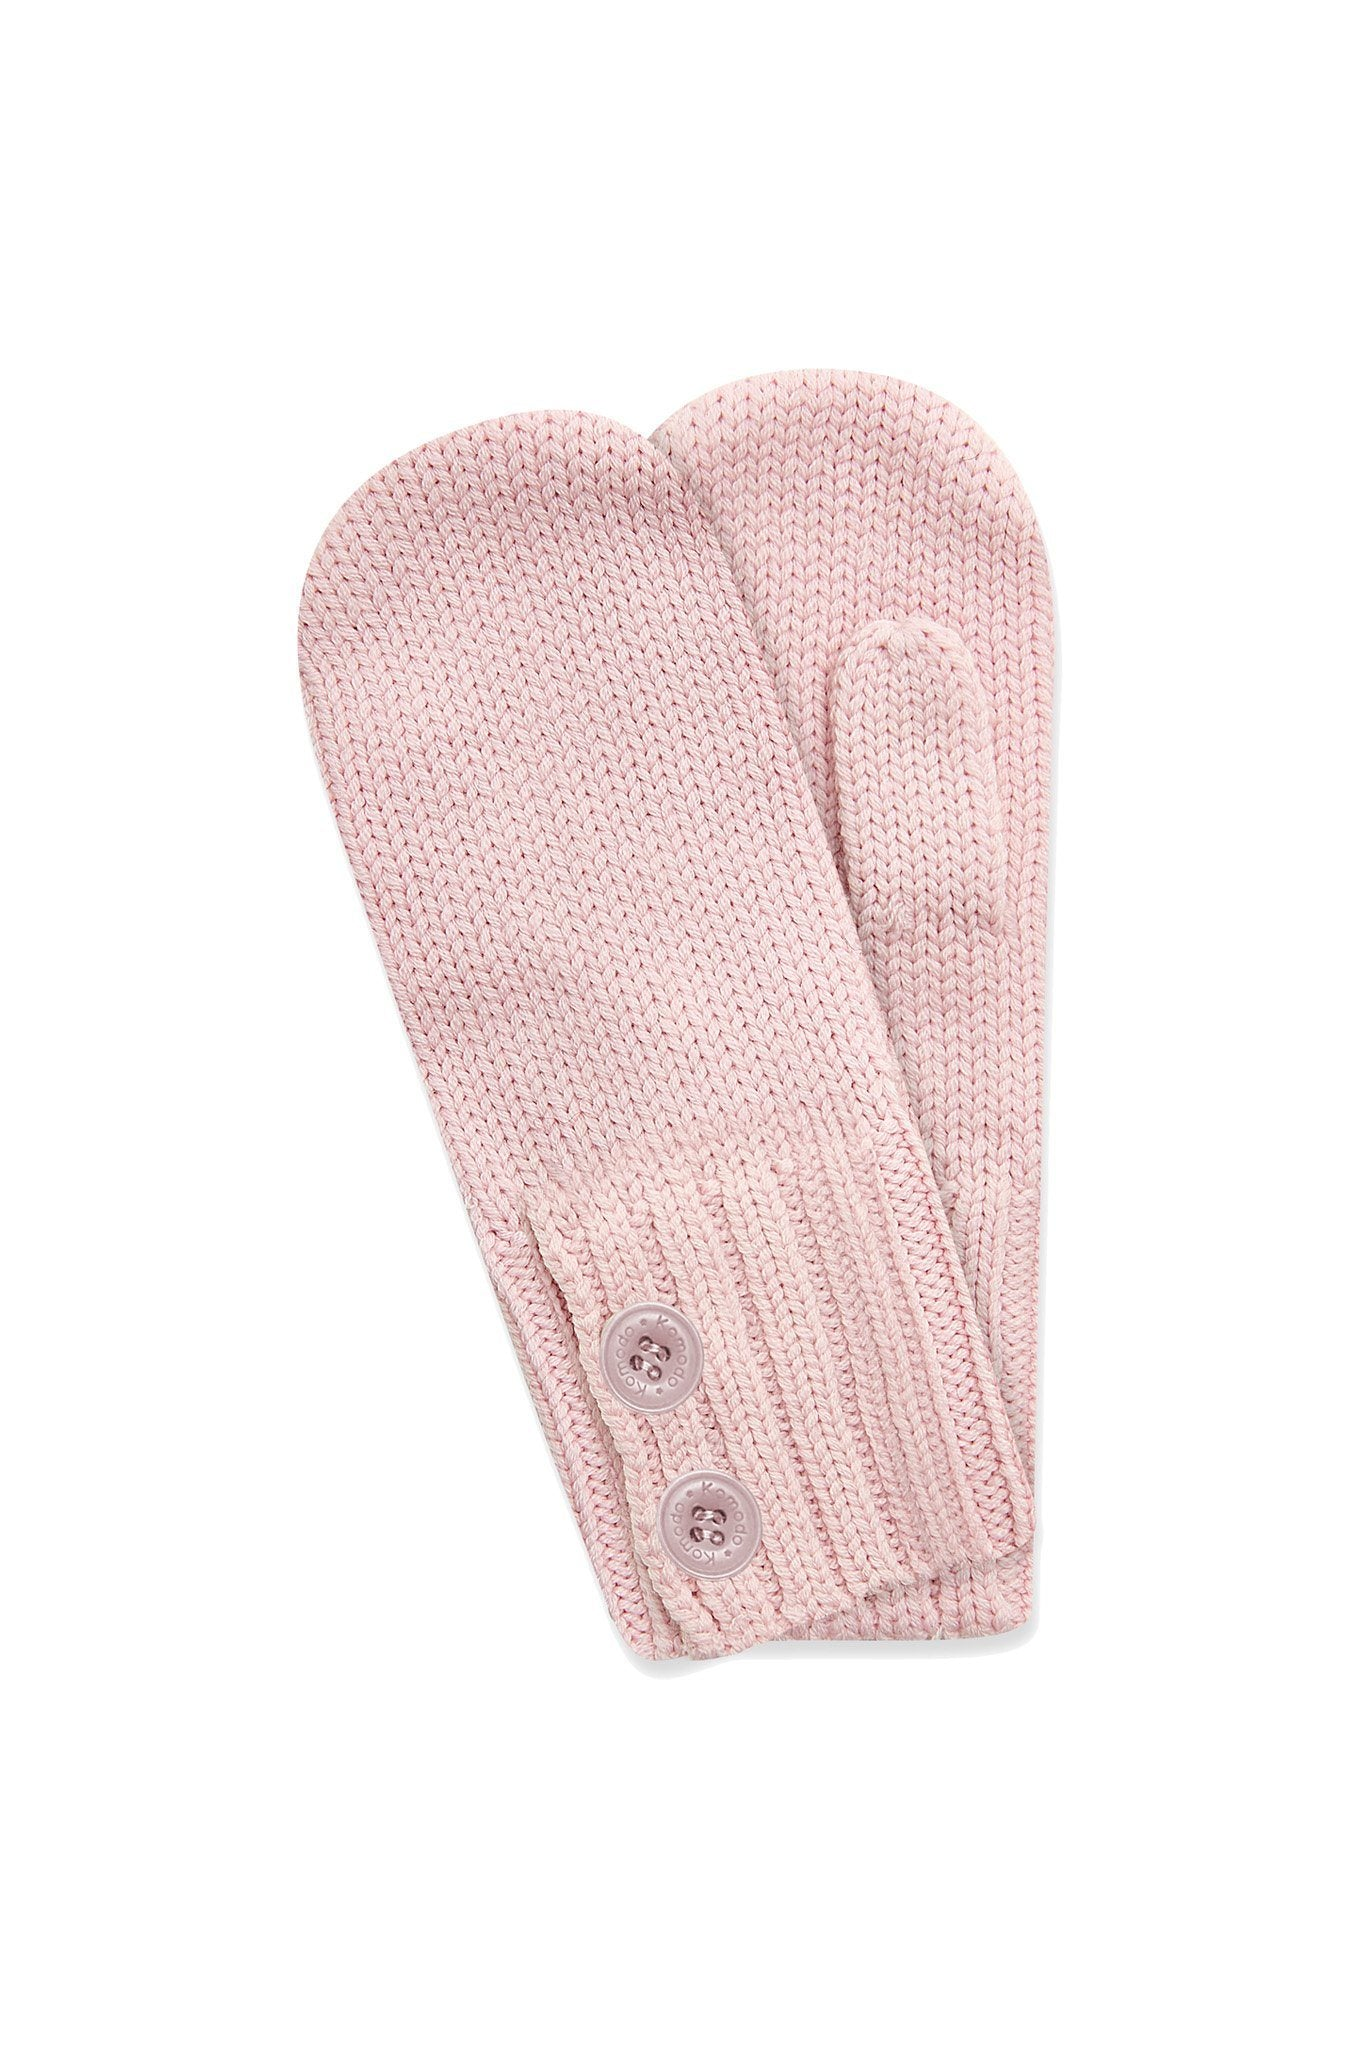 EMI Merino Wool Mitten Shell - Komodo Fashion